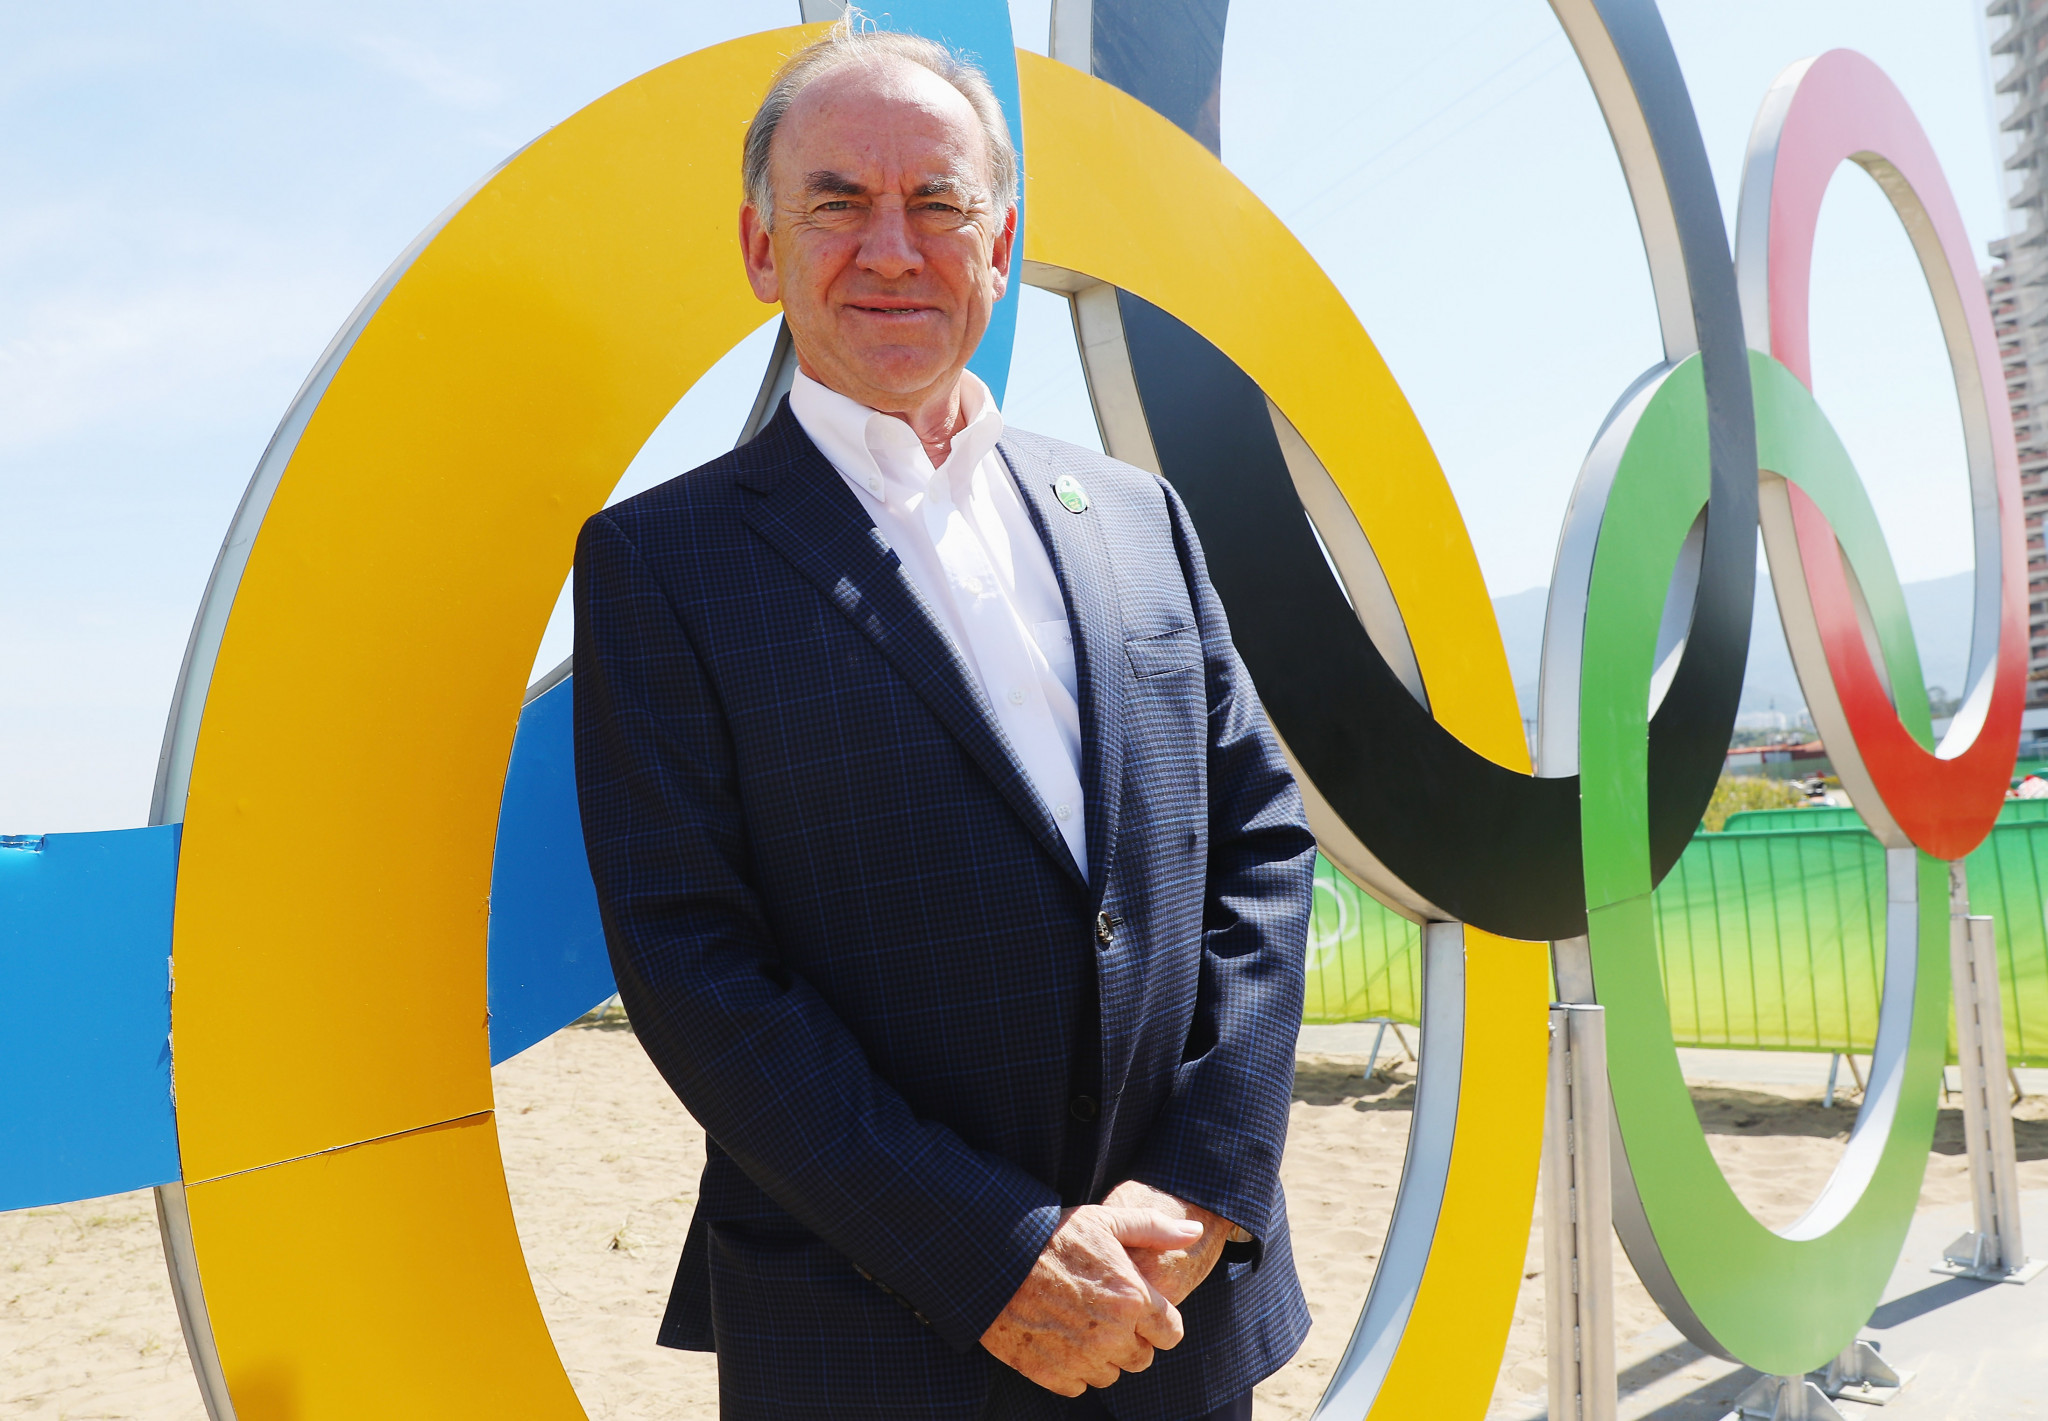 Retiring International Golf Federation President Peter Dawson believes golf is now firmly established in the Olympic programme ©Getty Images